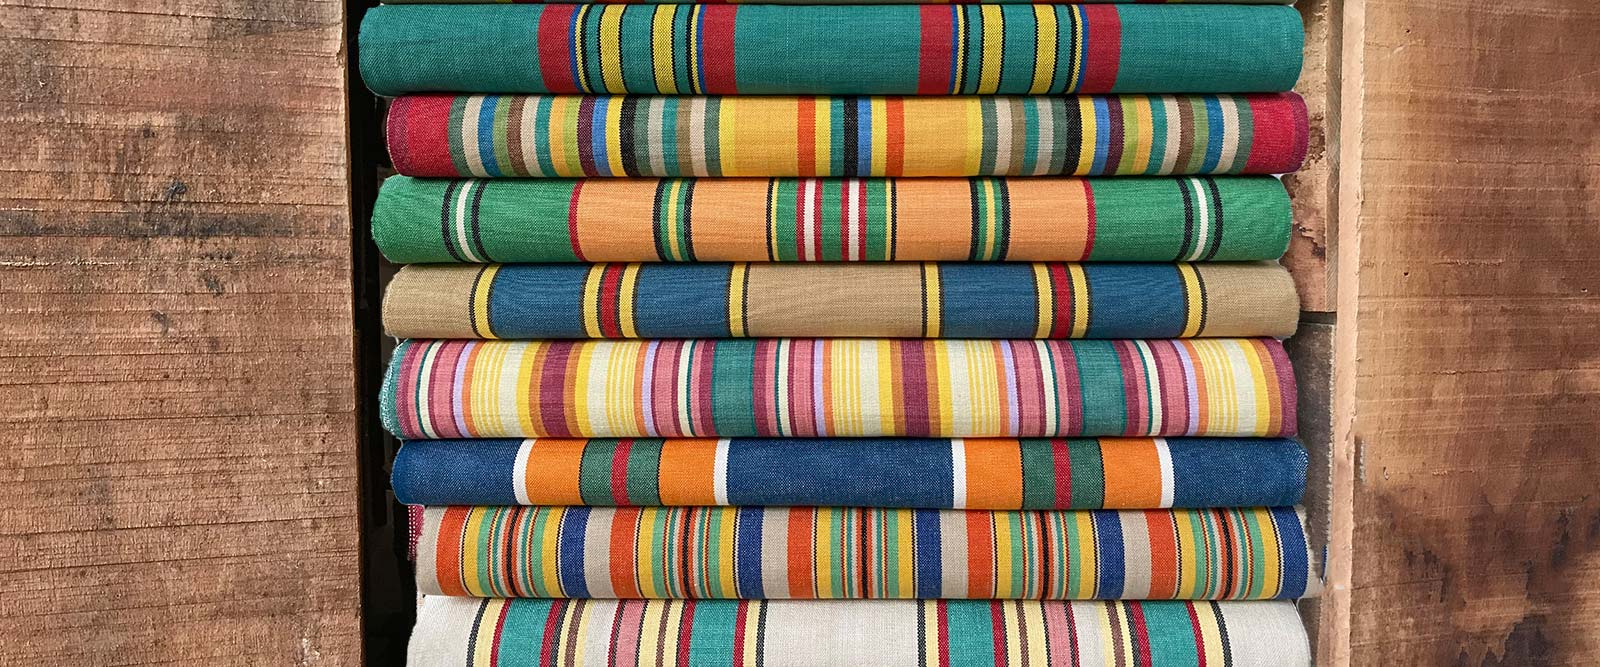 Vintage Deckchair Canvas & Deckchair Canvas | Deckchair Fabrics | Striped Deck Chair Fabrics ...